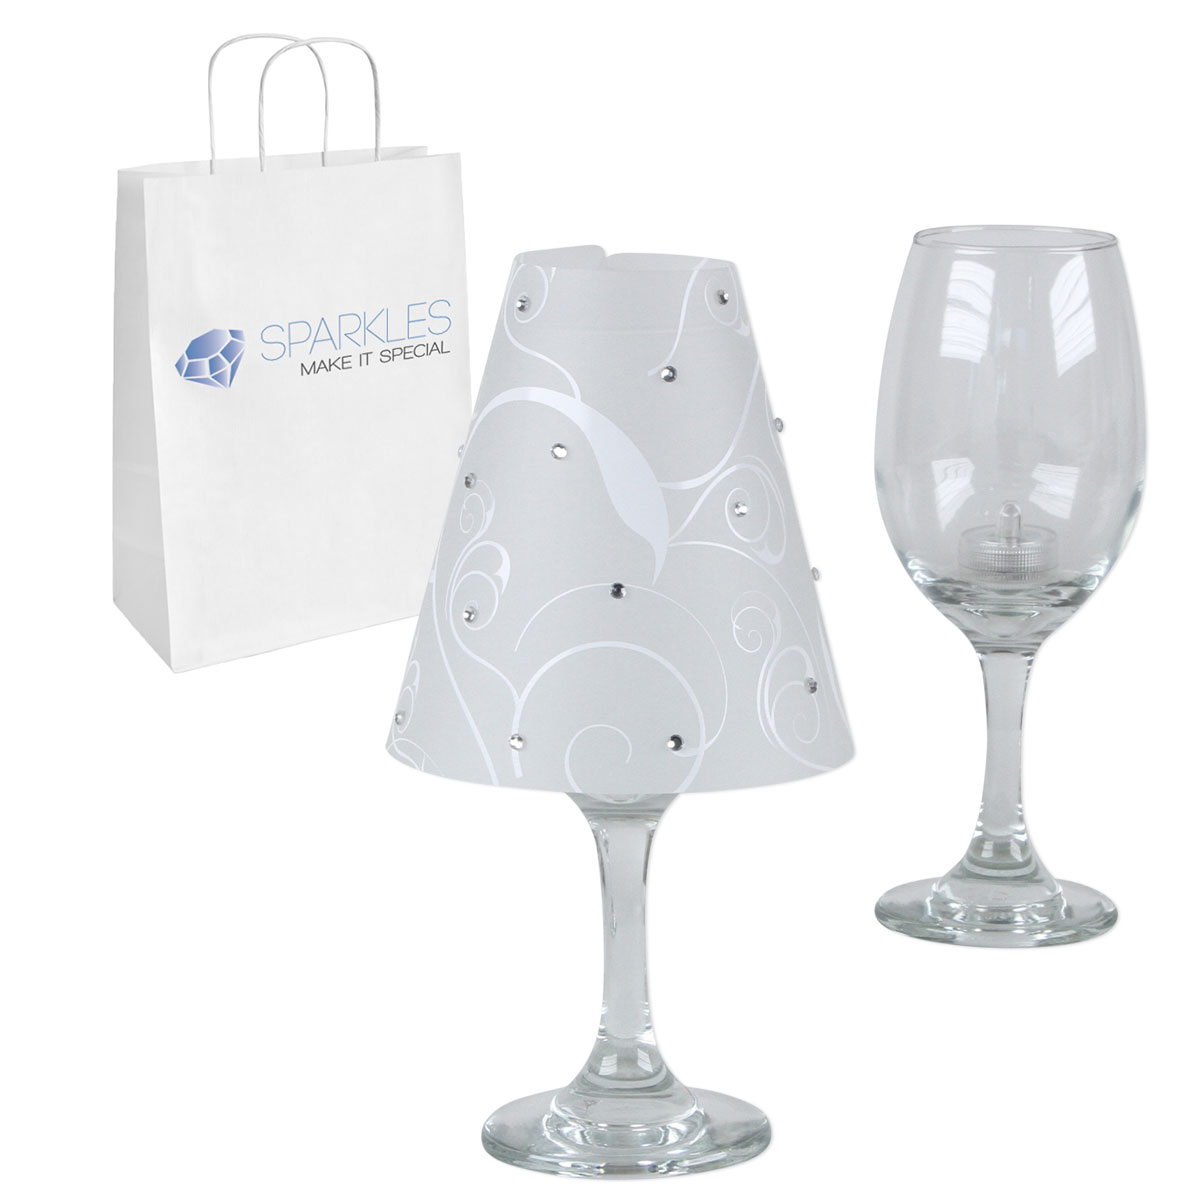 Sparkles Make It Special Vellum Lampshades Turn Any Wine Glass Into A Beautiful Lamp Create Unique Centerpieces For Wedding Tables Or Tasty Additions To A